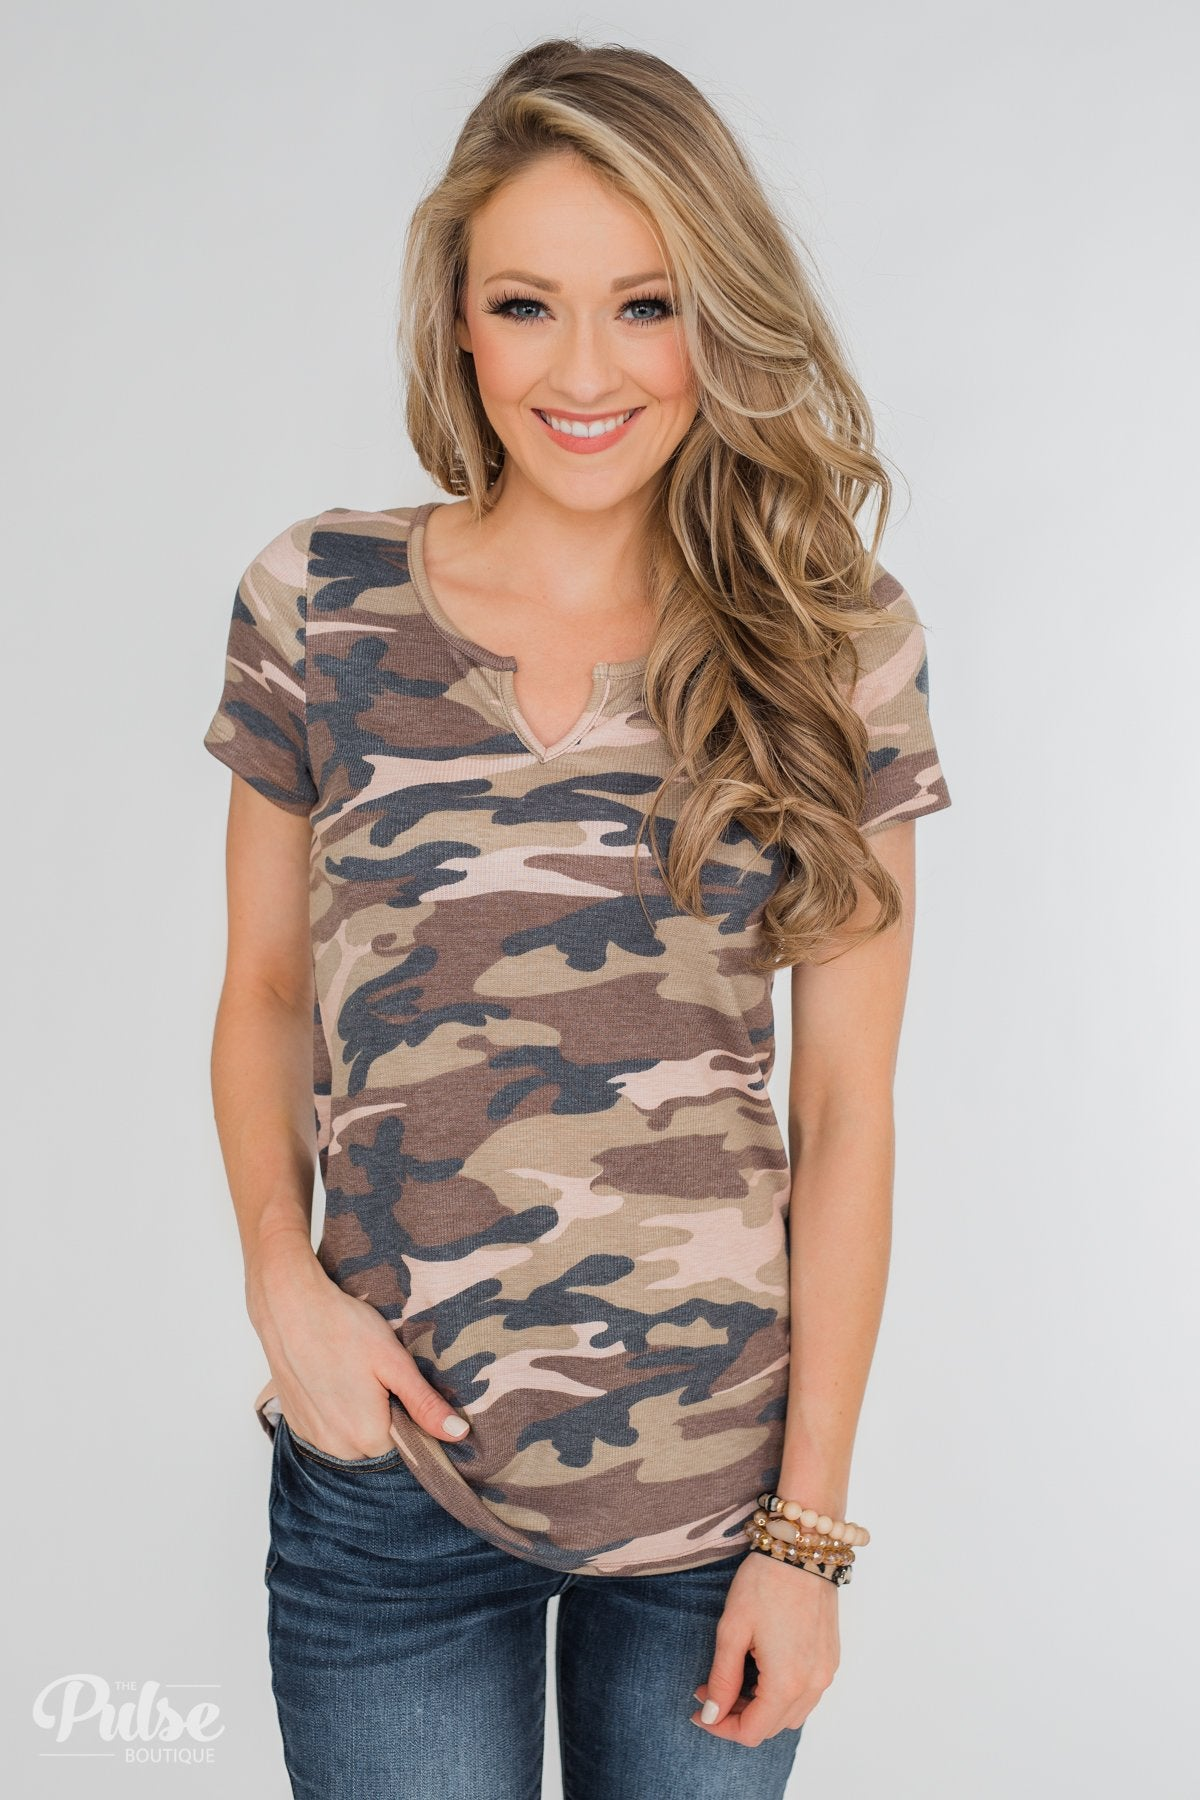 Casual in Camo Short Sleeve Top